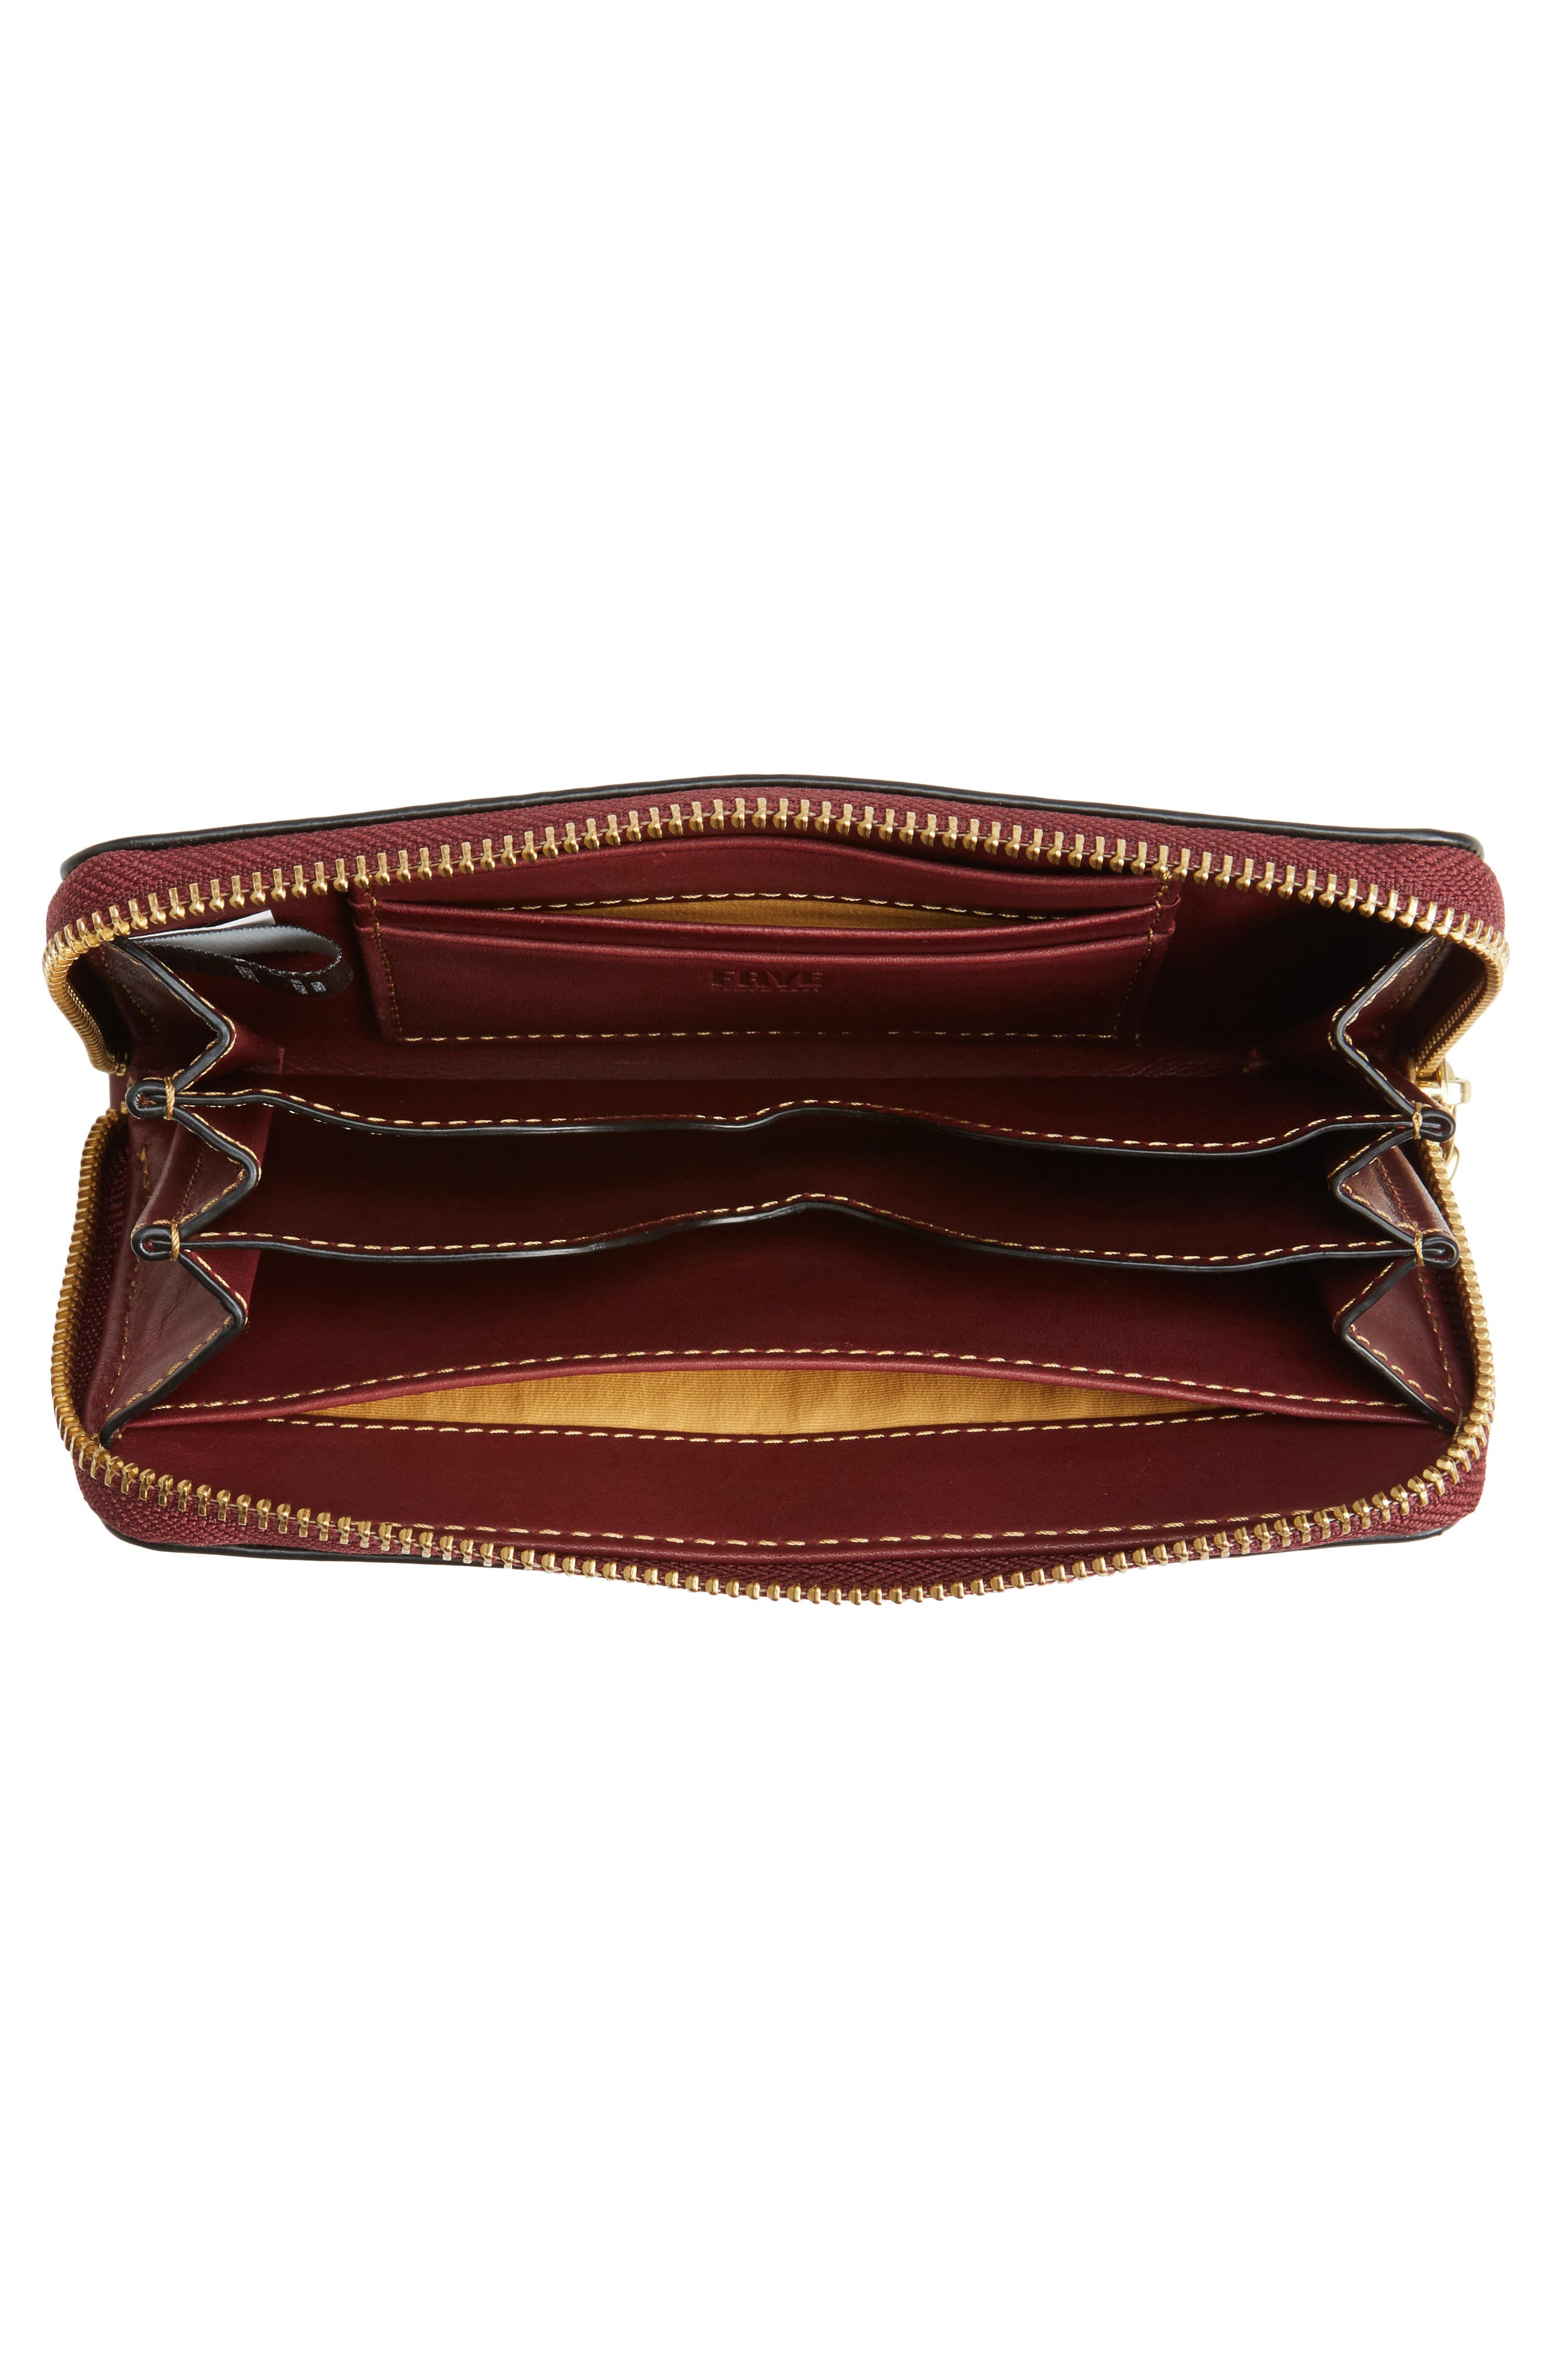 Ilana Harness Phone Leather Zip Wallet,                             Alternate thumbnail 8, color,